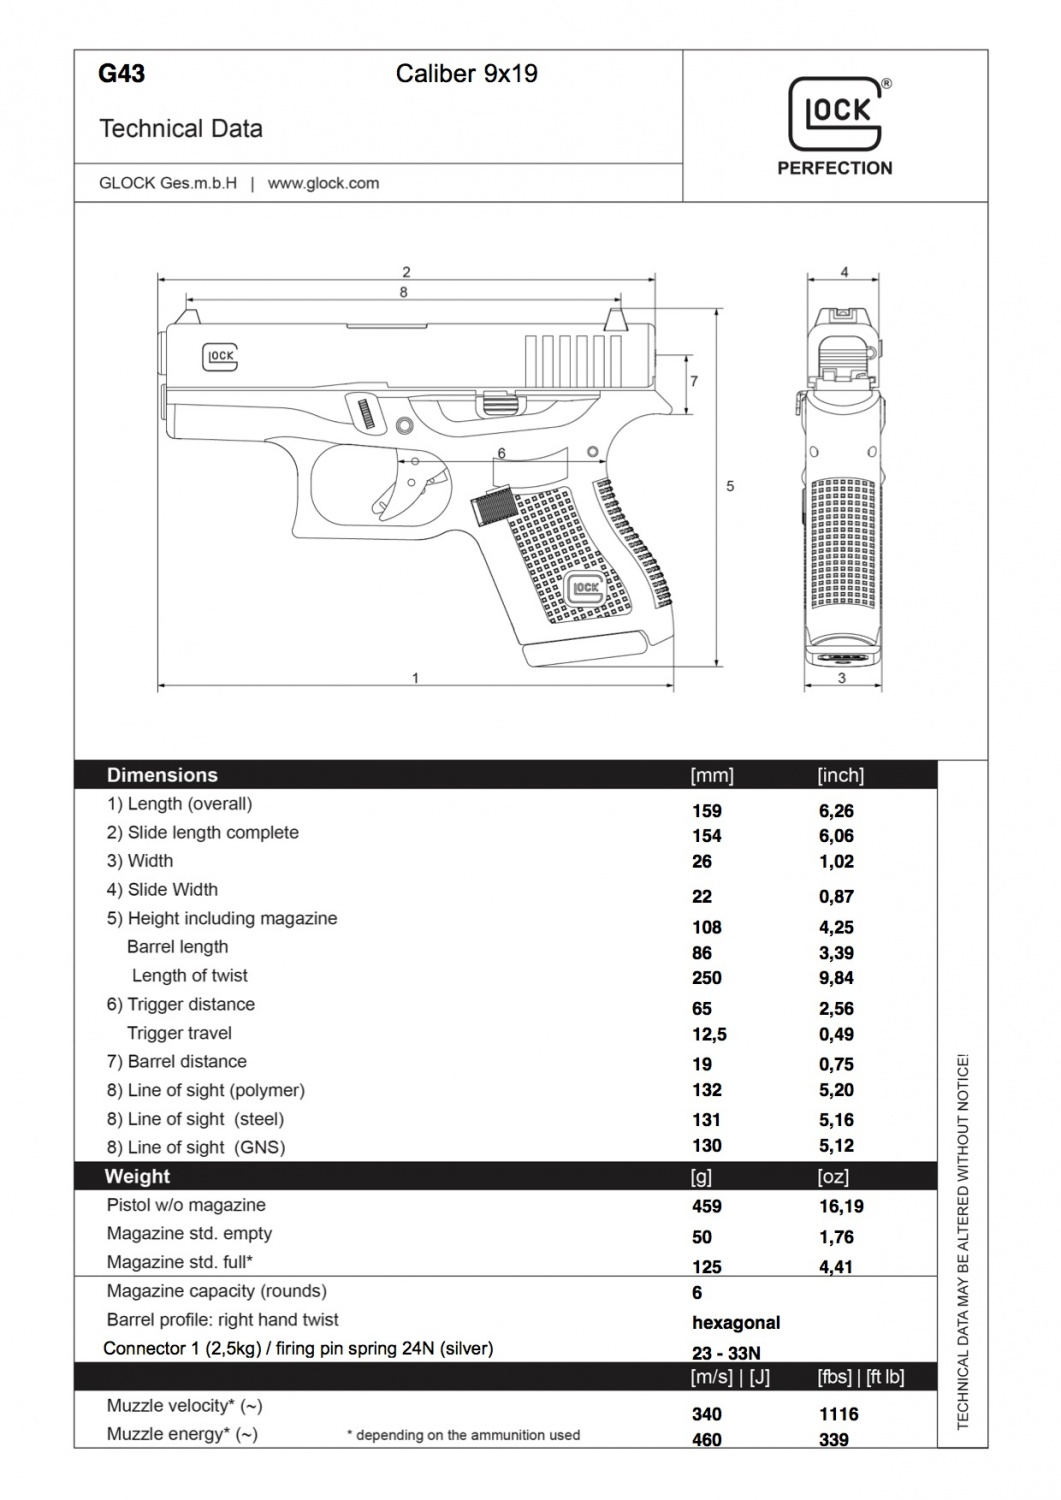 Image via TFB http://www.thefirearmblog.com/blog/2015/03/18/official-glock-43-single-stack-9mm/